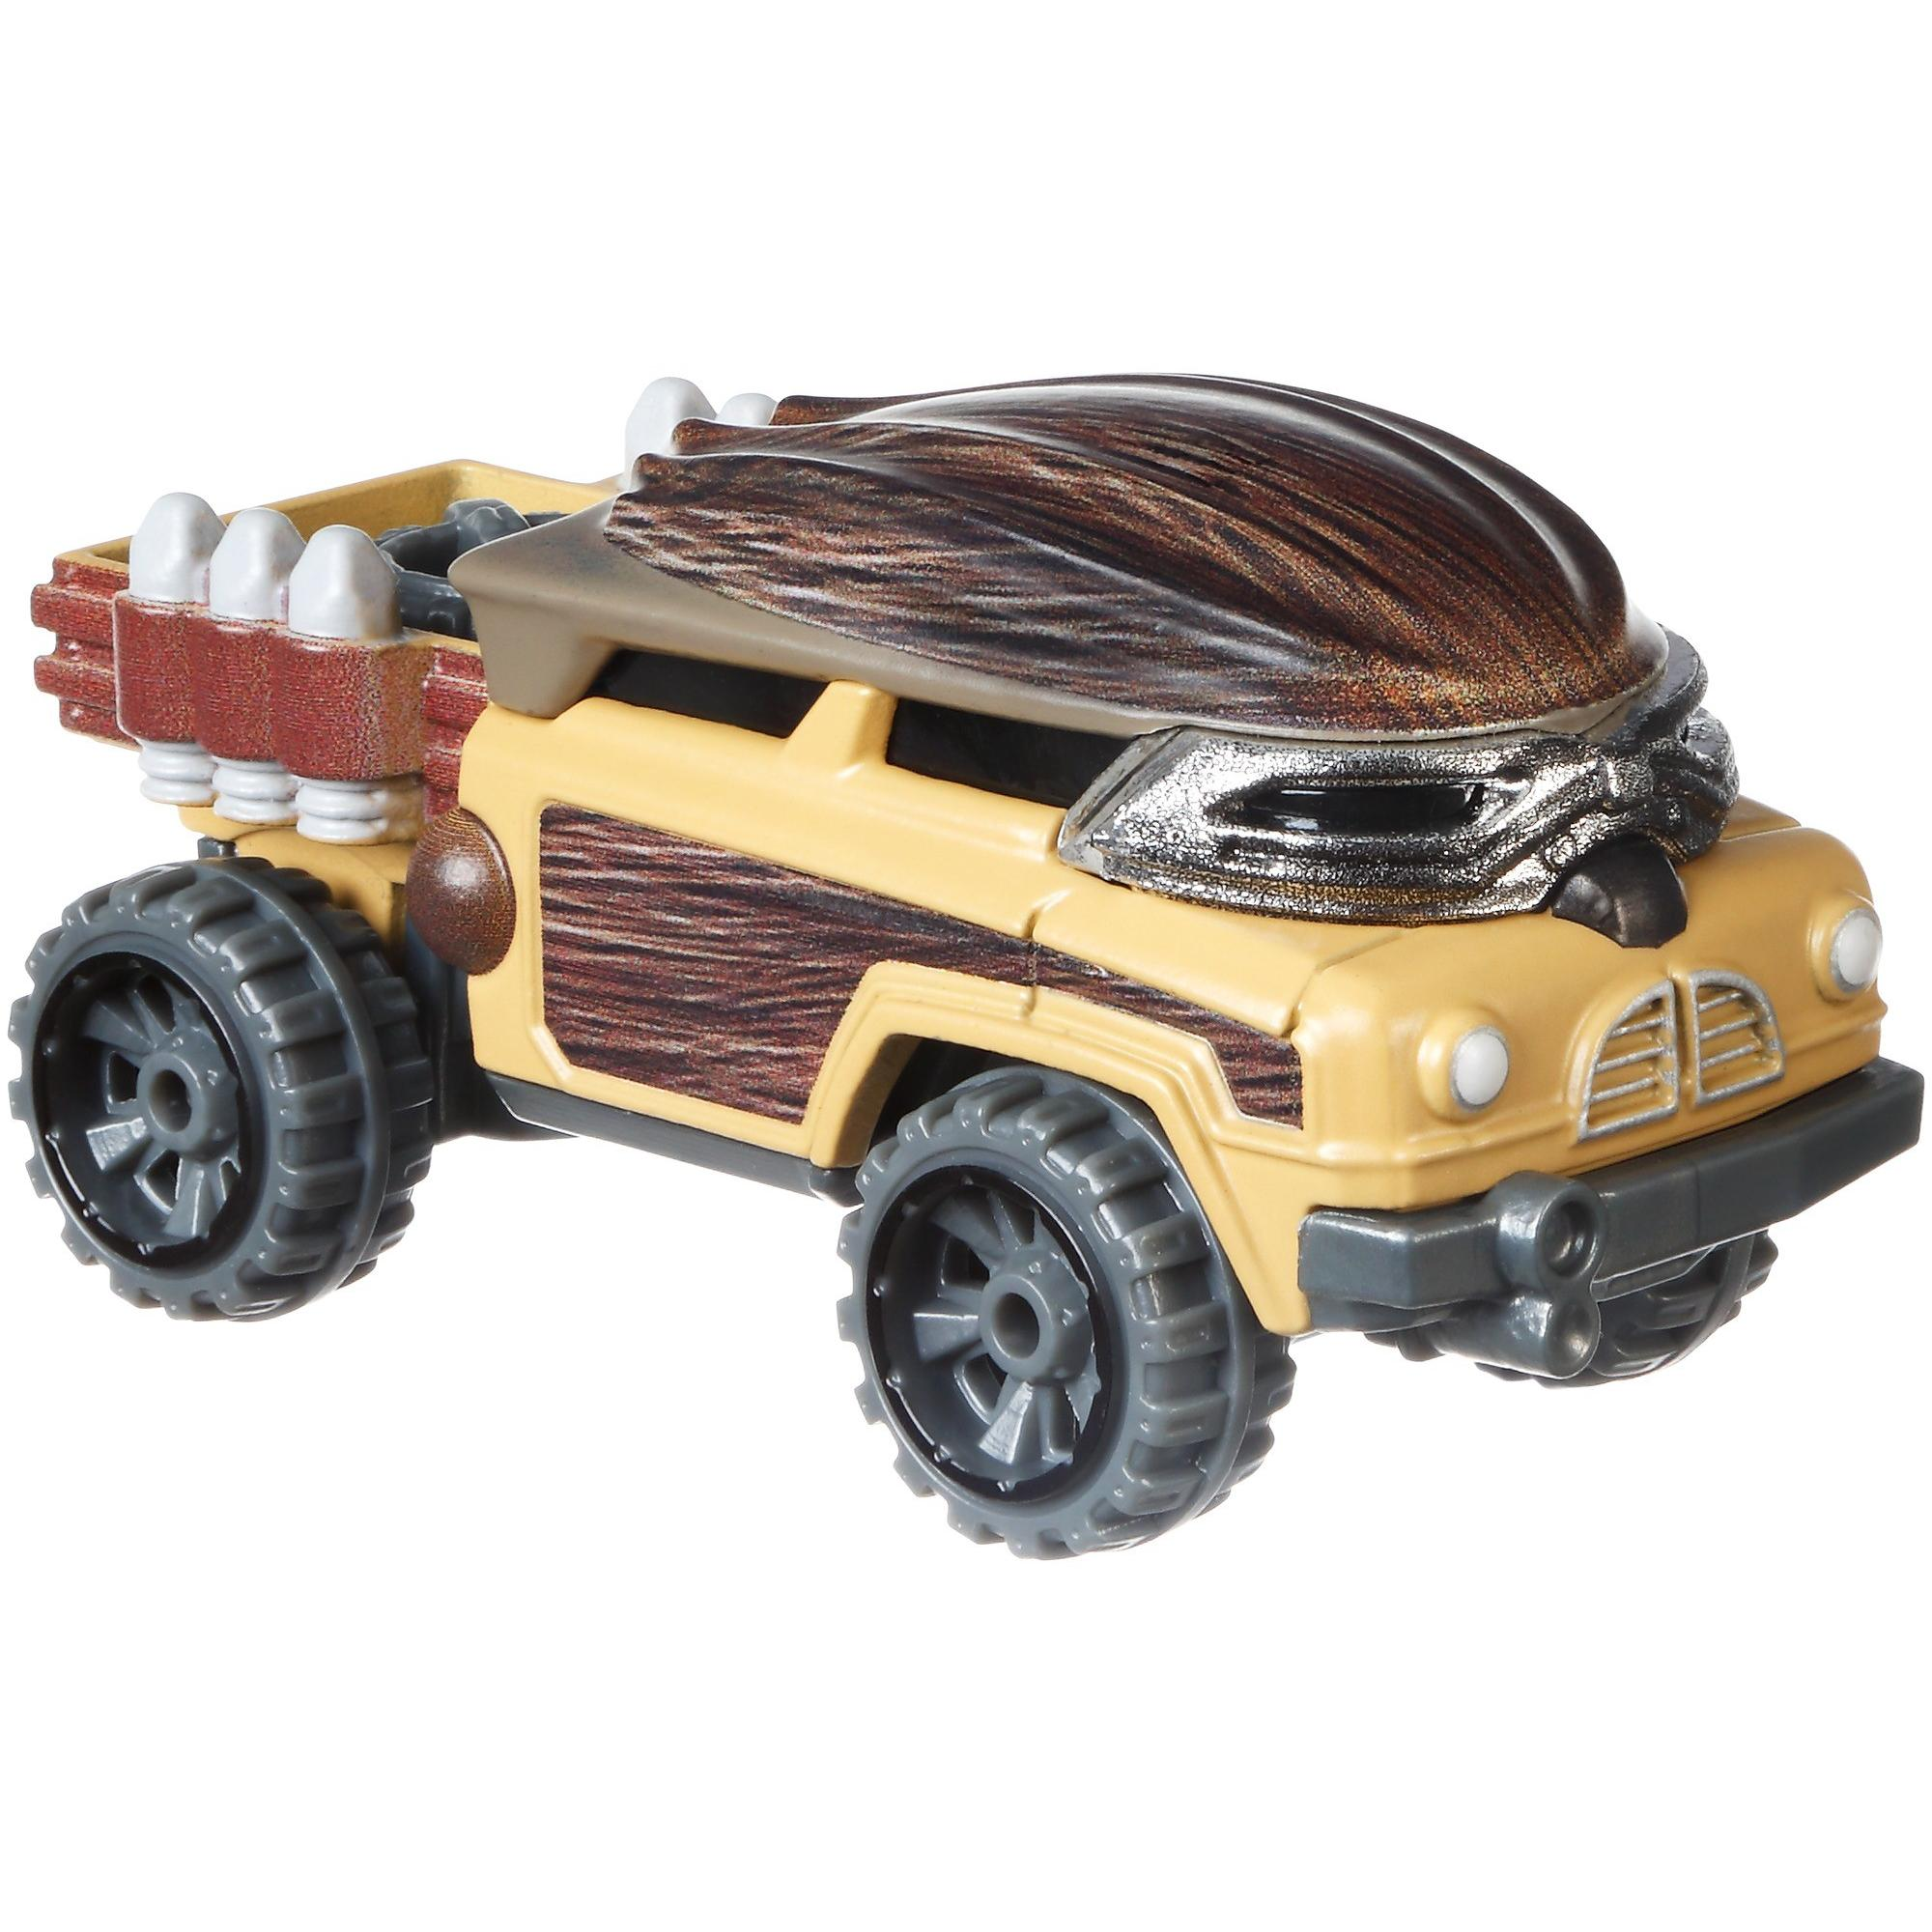 Solo: ASWS HW Chewbacca Character Car 3